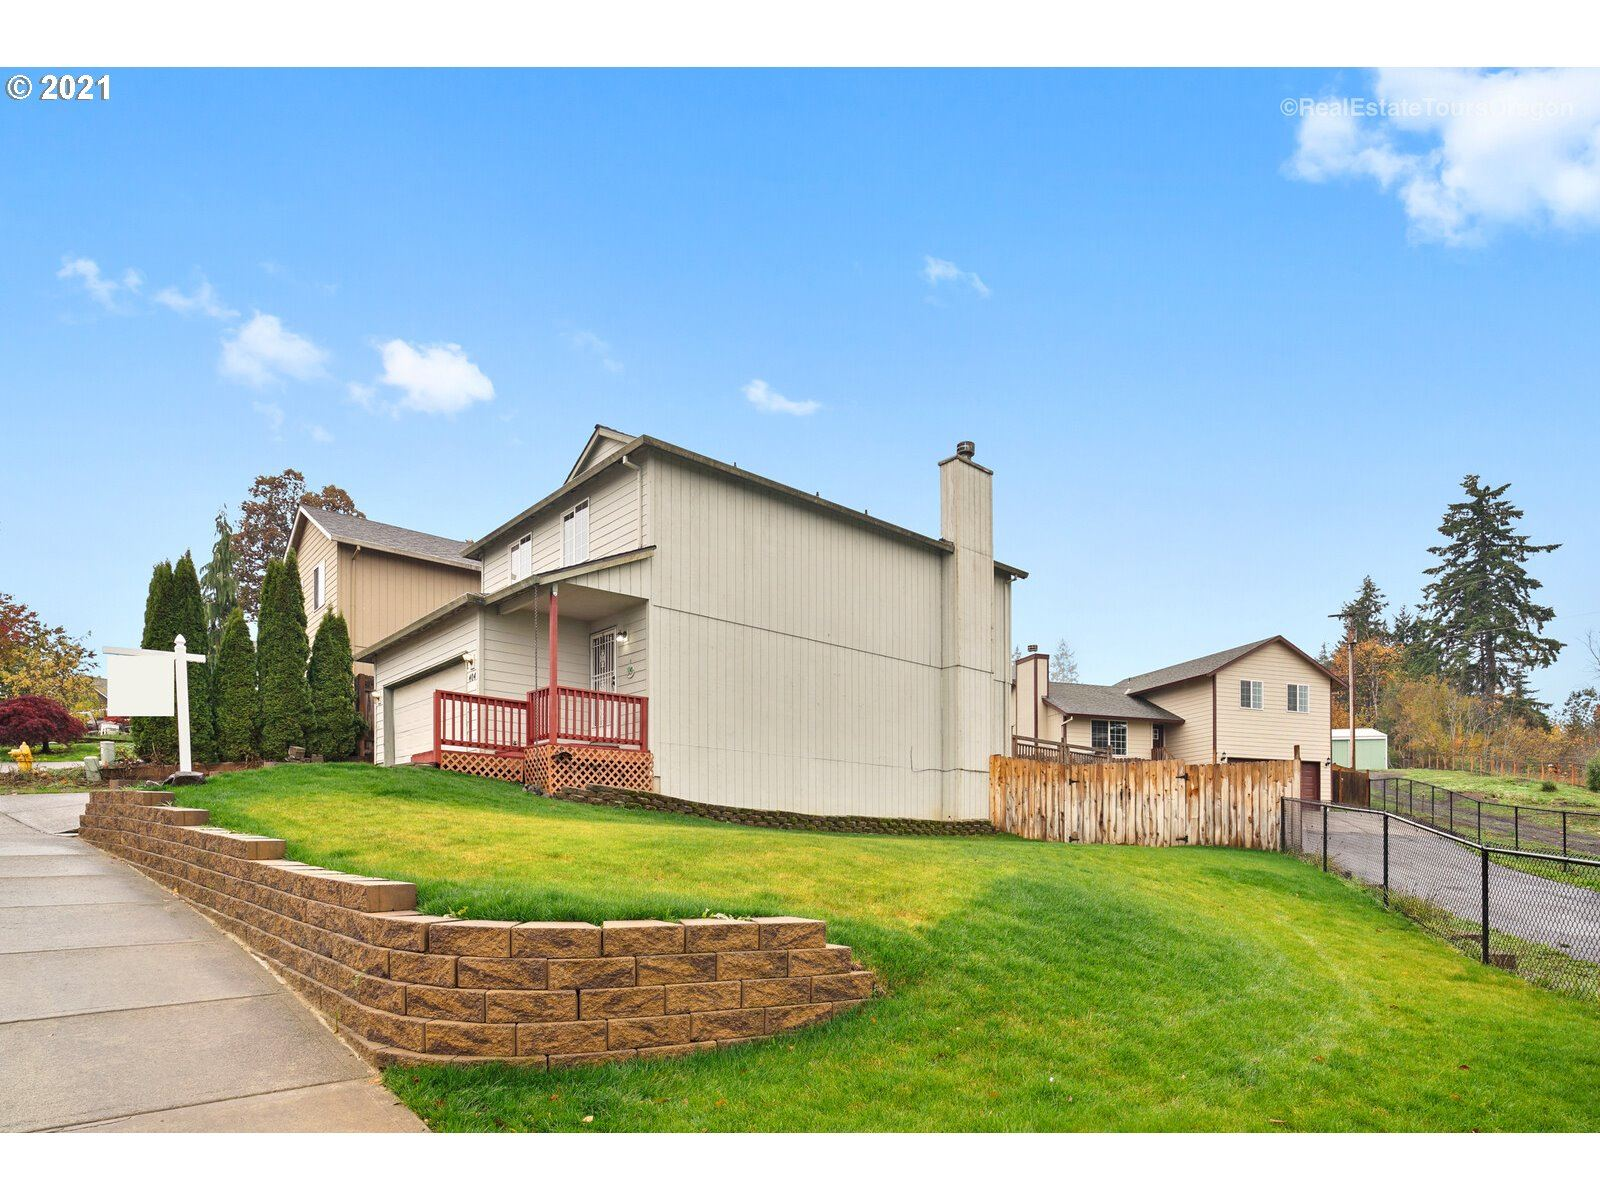 Photo of 404 TRAIL ST, Gaston, OR 97119 (MLS # 21204625)